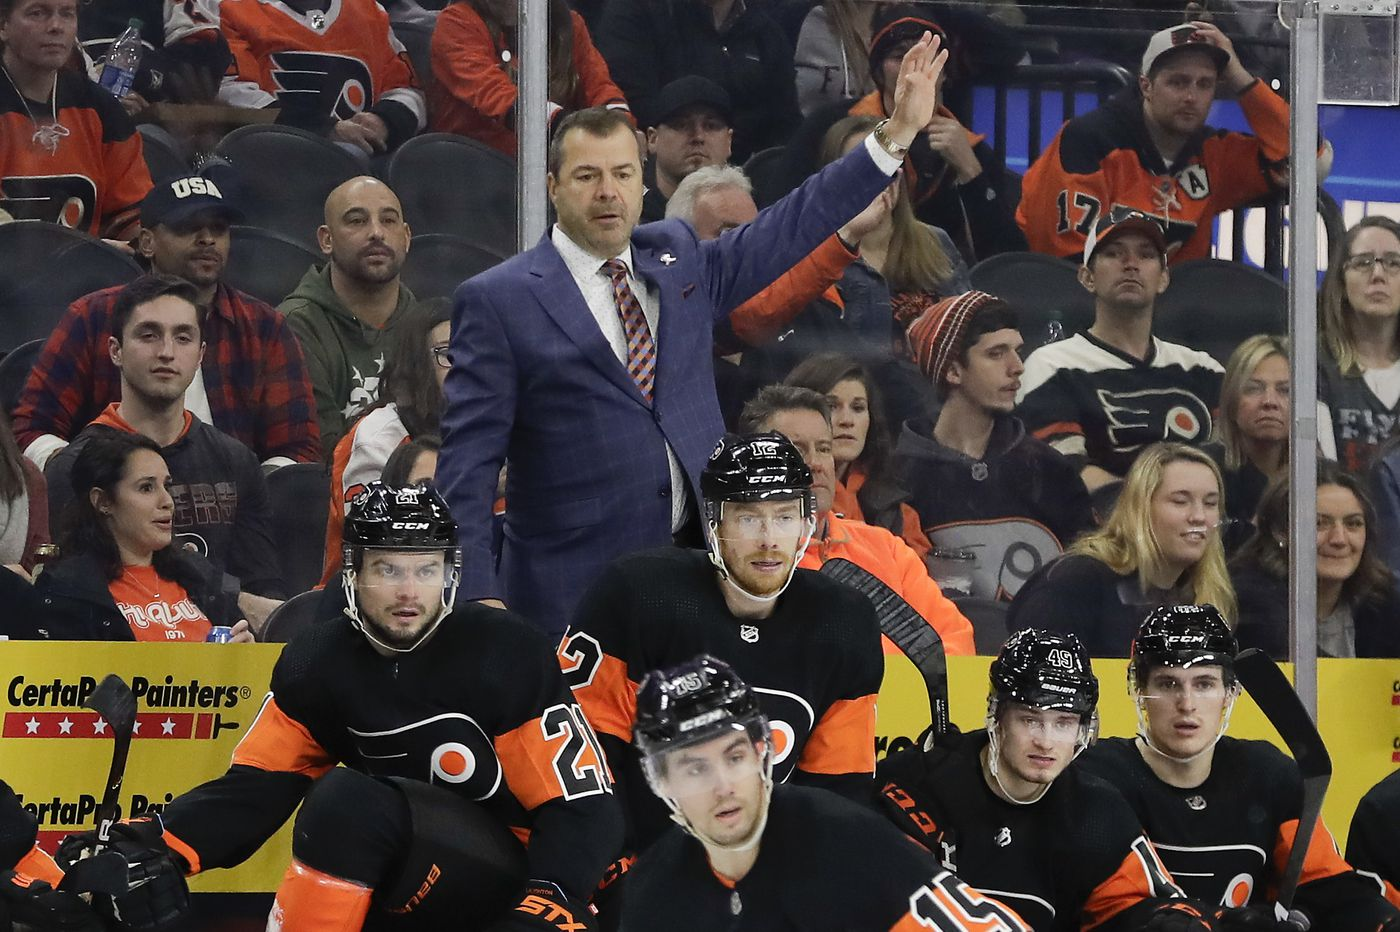 Tone-deaf Flyers coach Alain Vigneault scolds critics for questioning his ignorance, then runs away | Marcus Hayes